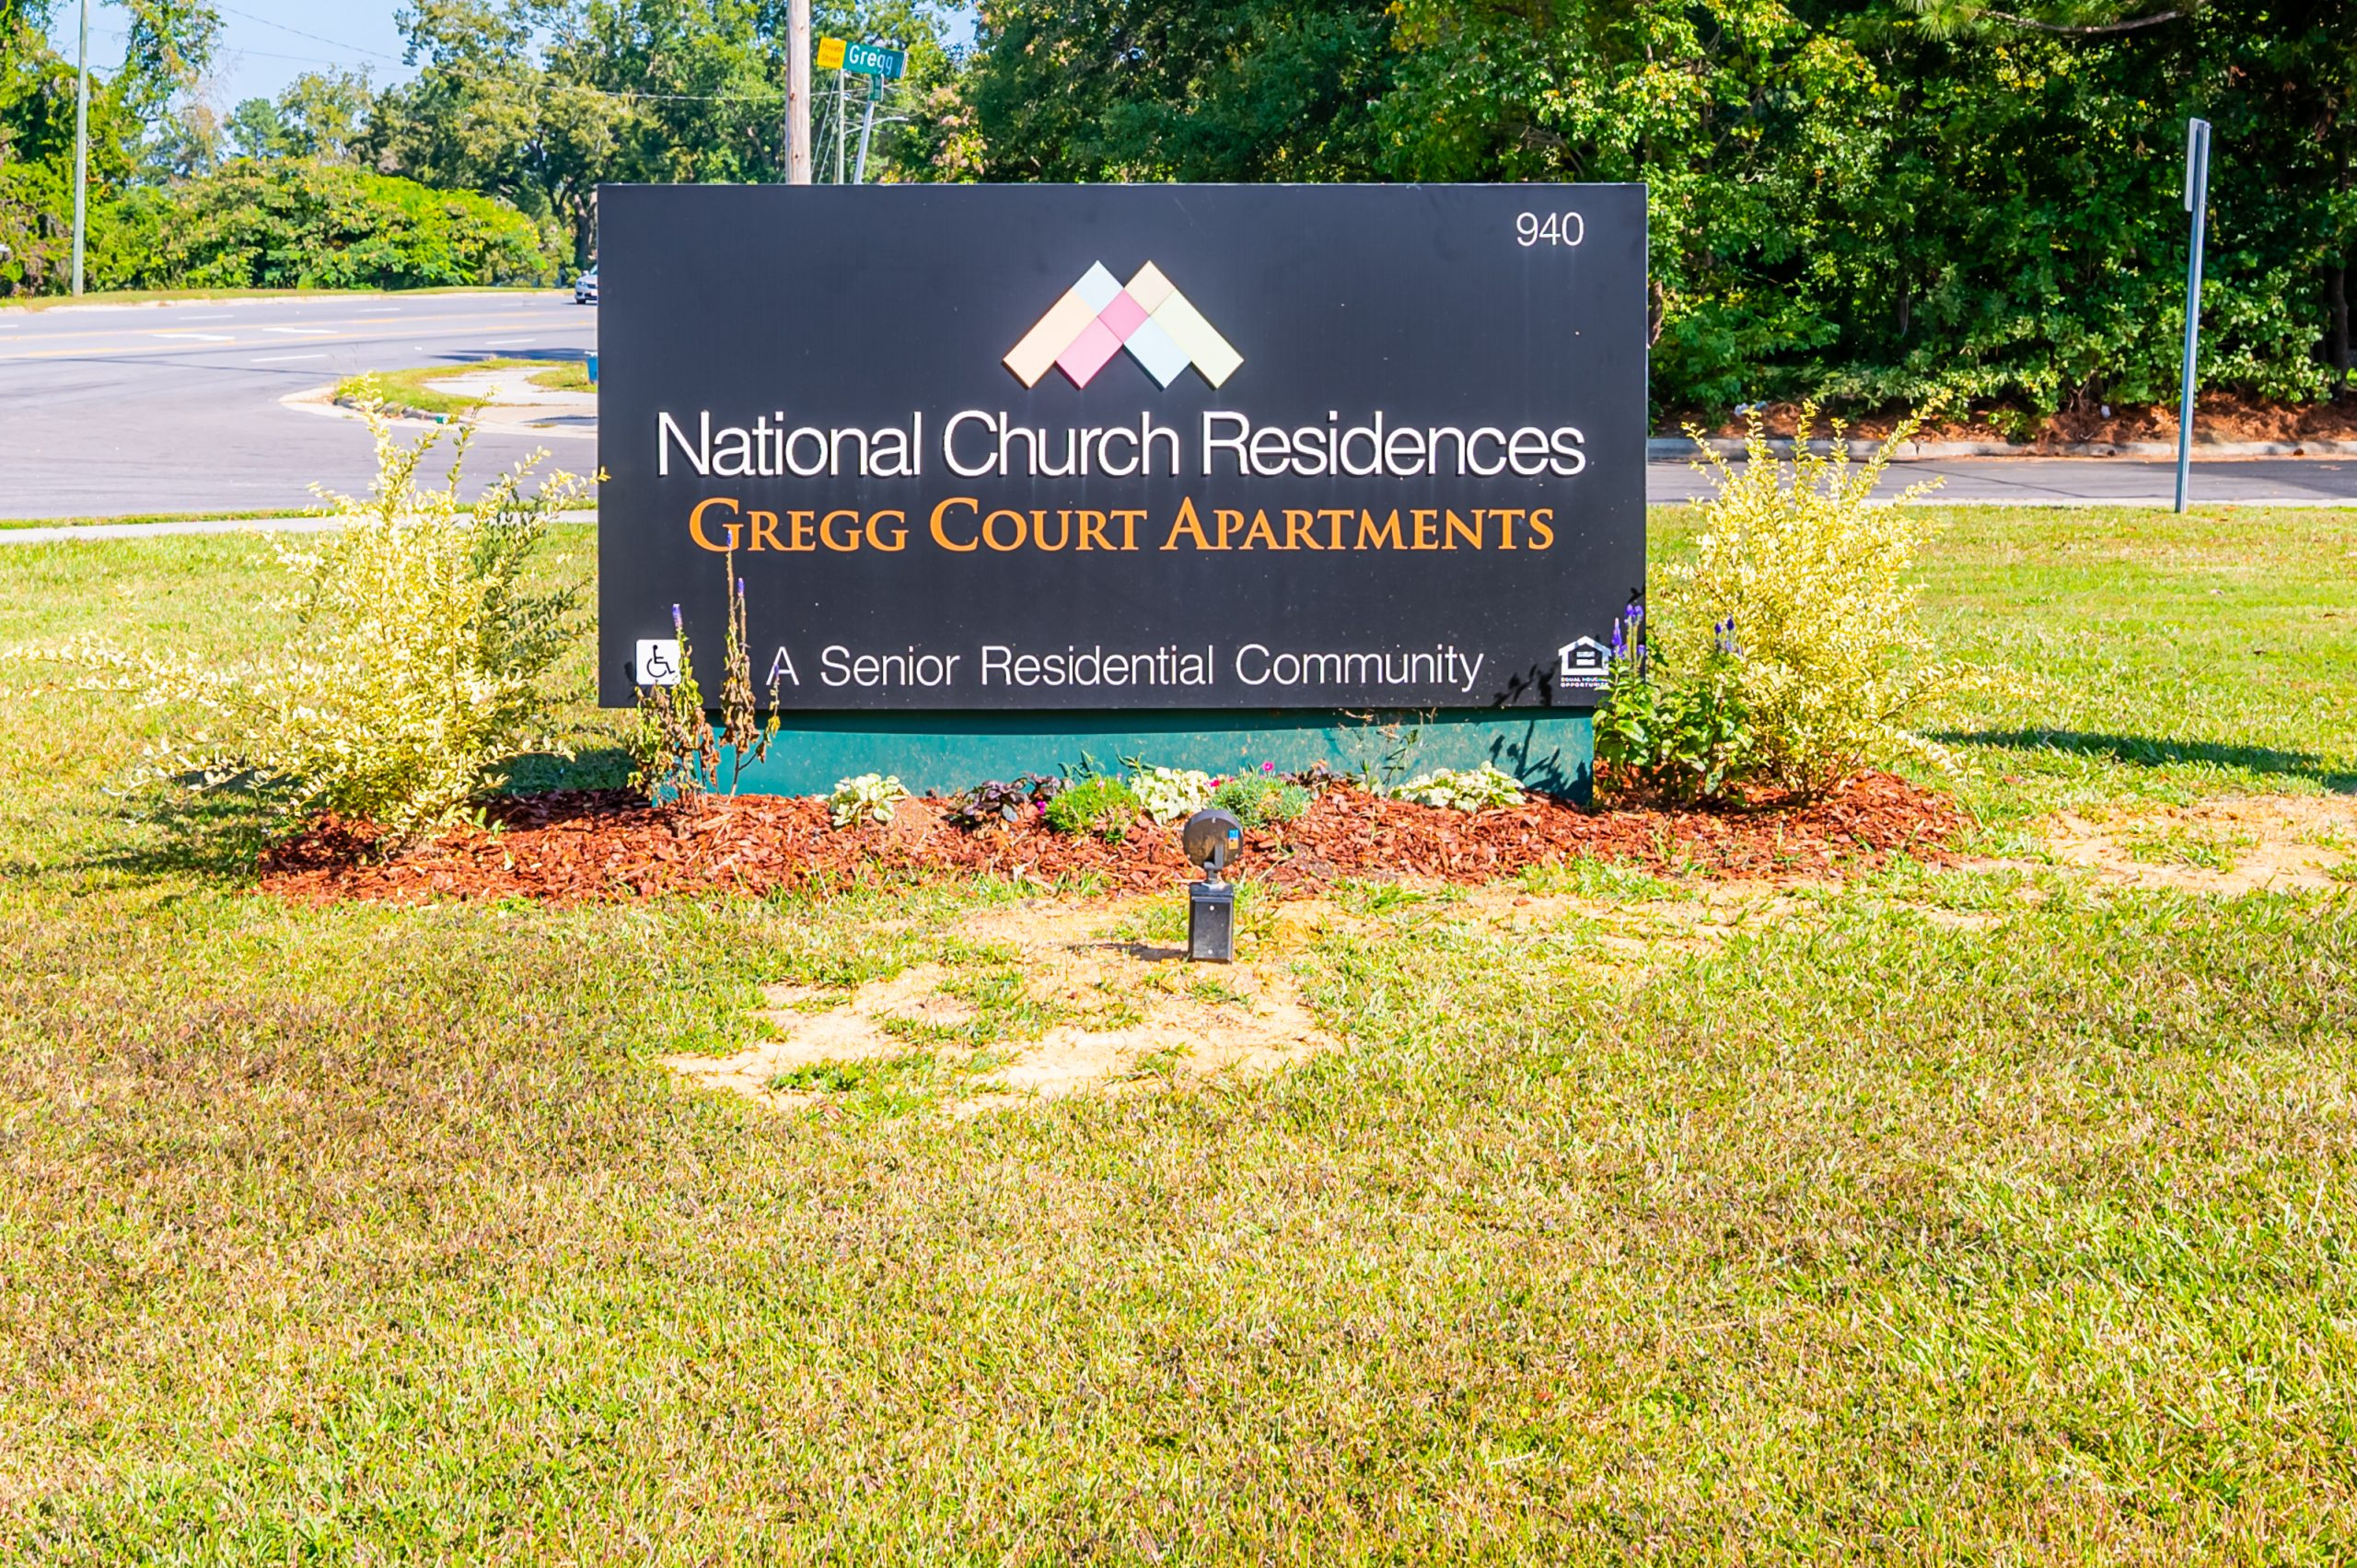 Gregg Court Apartments sign